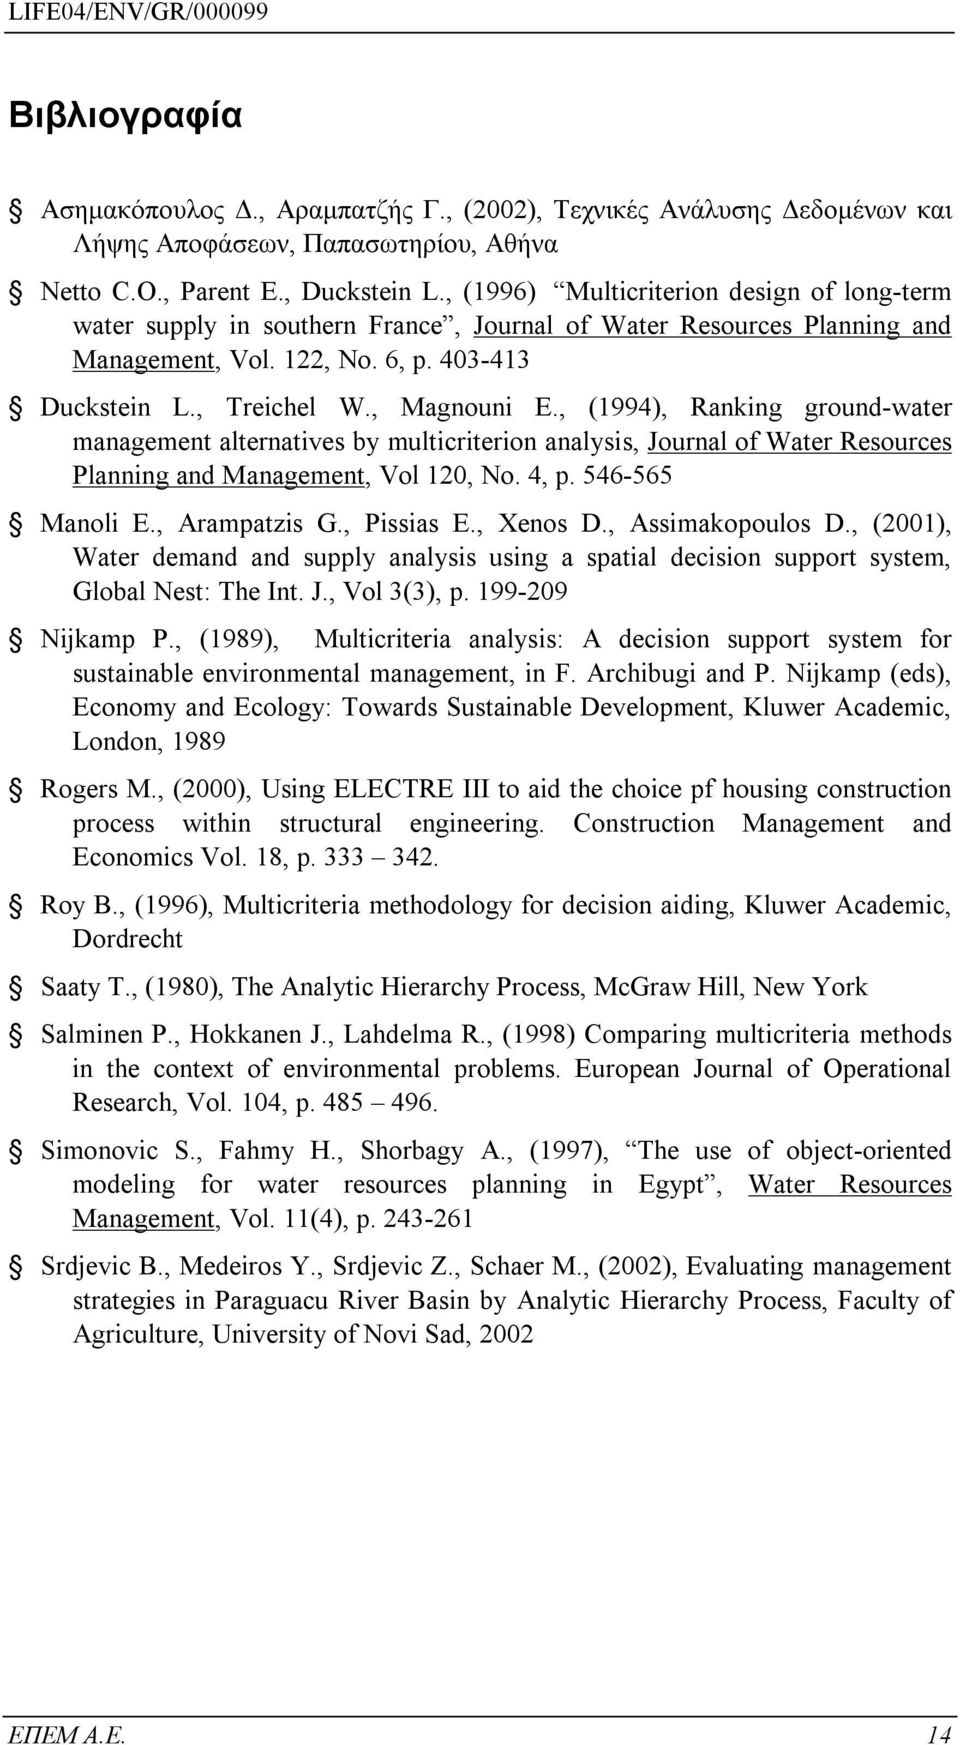 , (1994), Ranking ground-water management alternatives by multicriterion analysis, Journal of Water Resources Planning and Management, Vol 120, No. 4, p. 546-565 Manoli E., Arampatzis G., Pissias E.